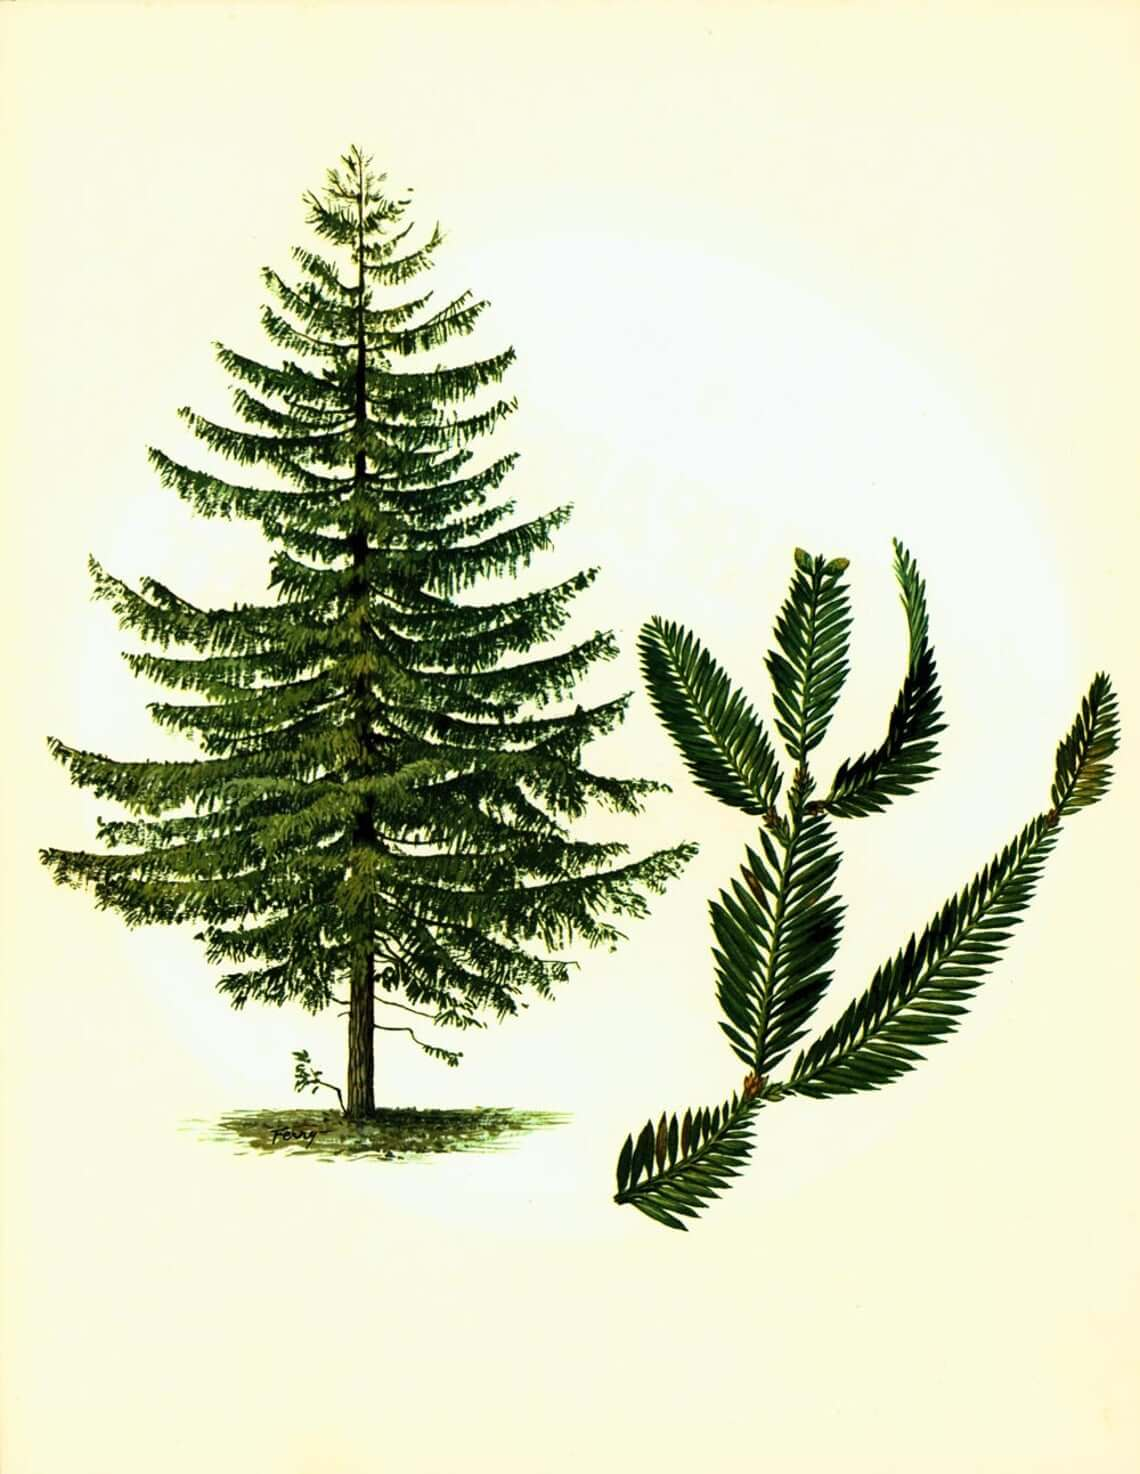 1967 French Botanical Drawing of a Sequoia